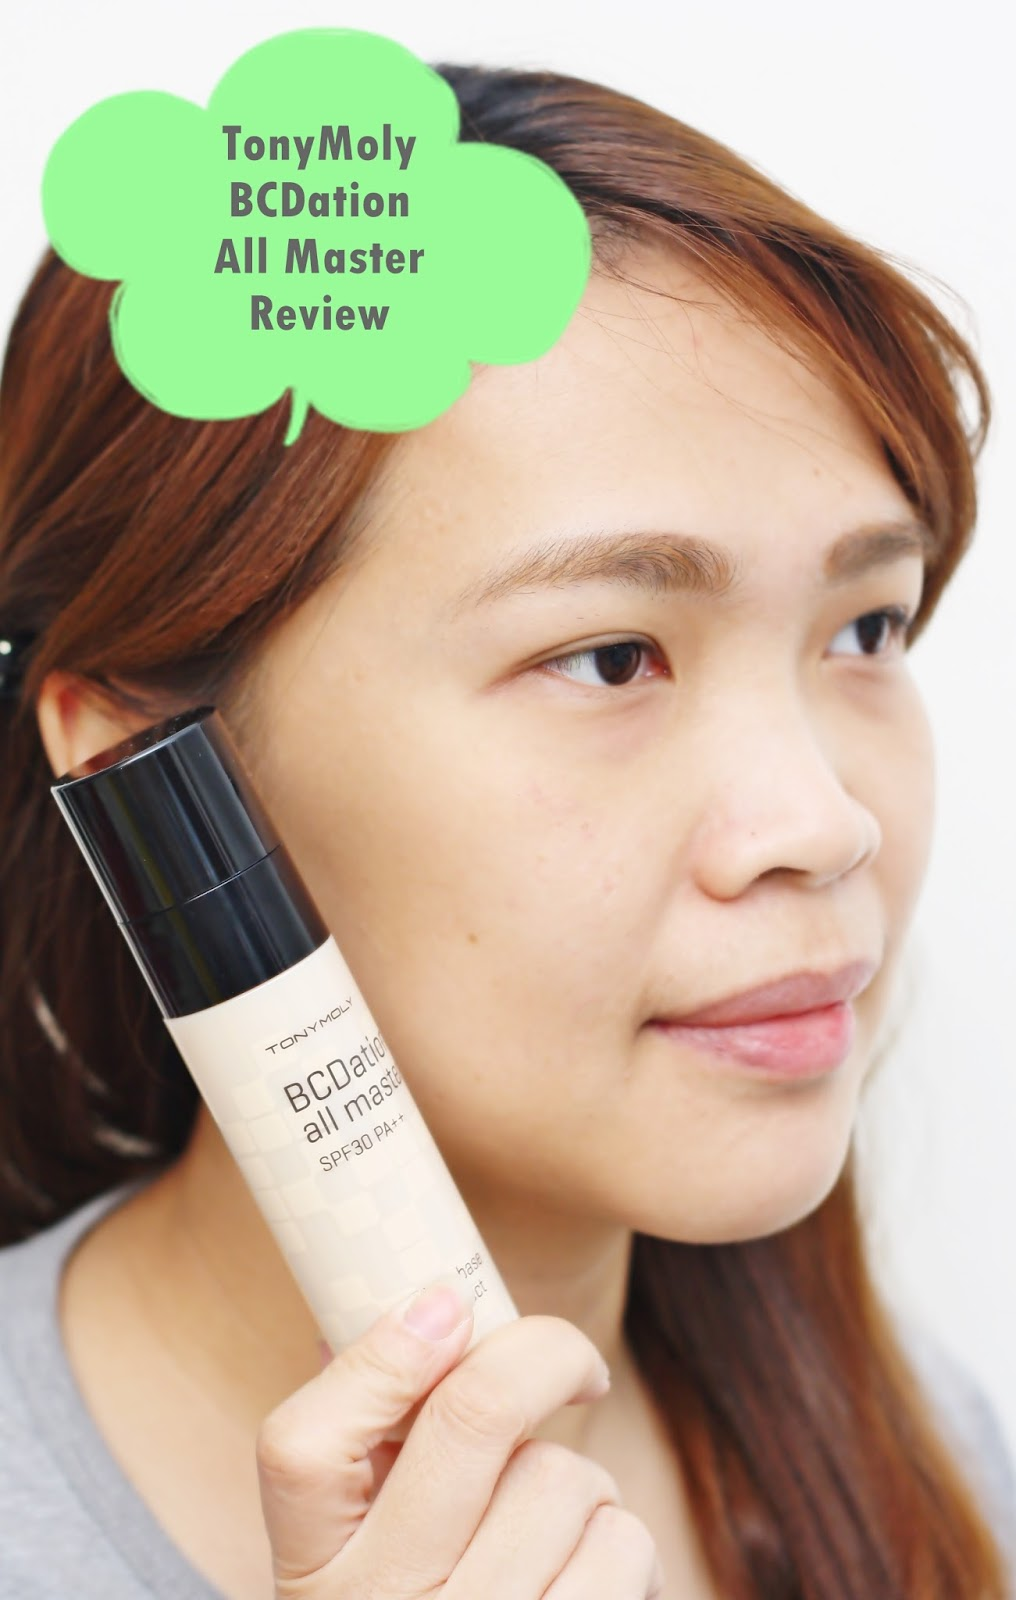 Tony Moly BCDation All Master SPF30 PA++ Air Light Base But Perfect Review